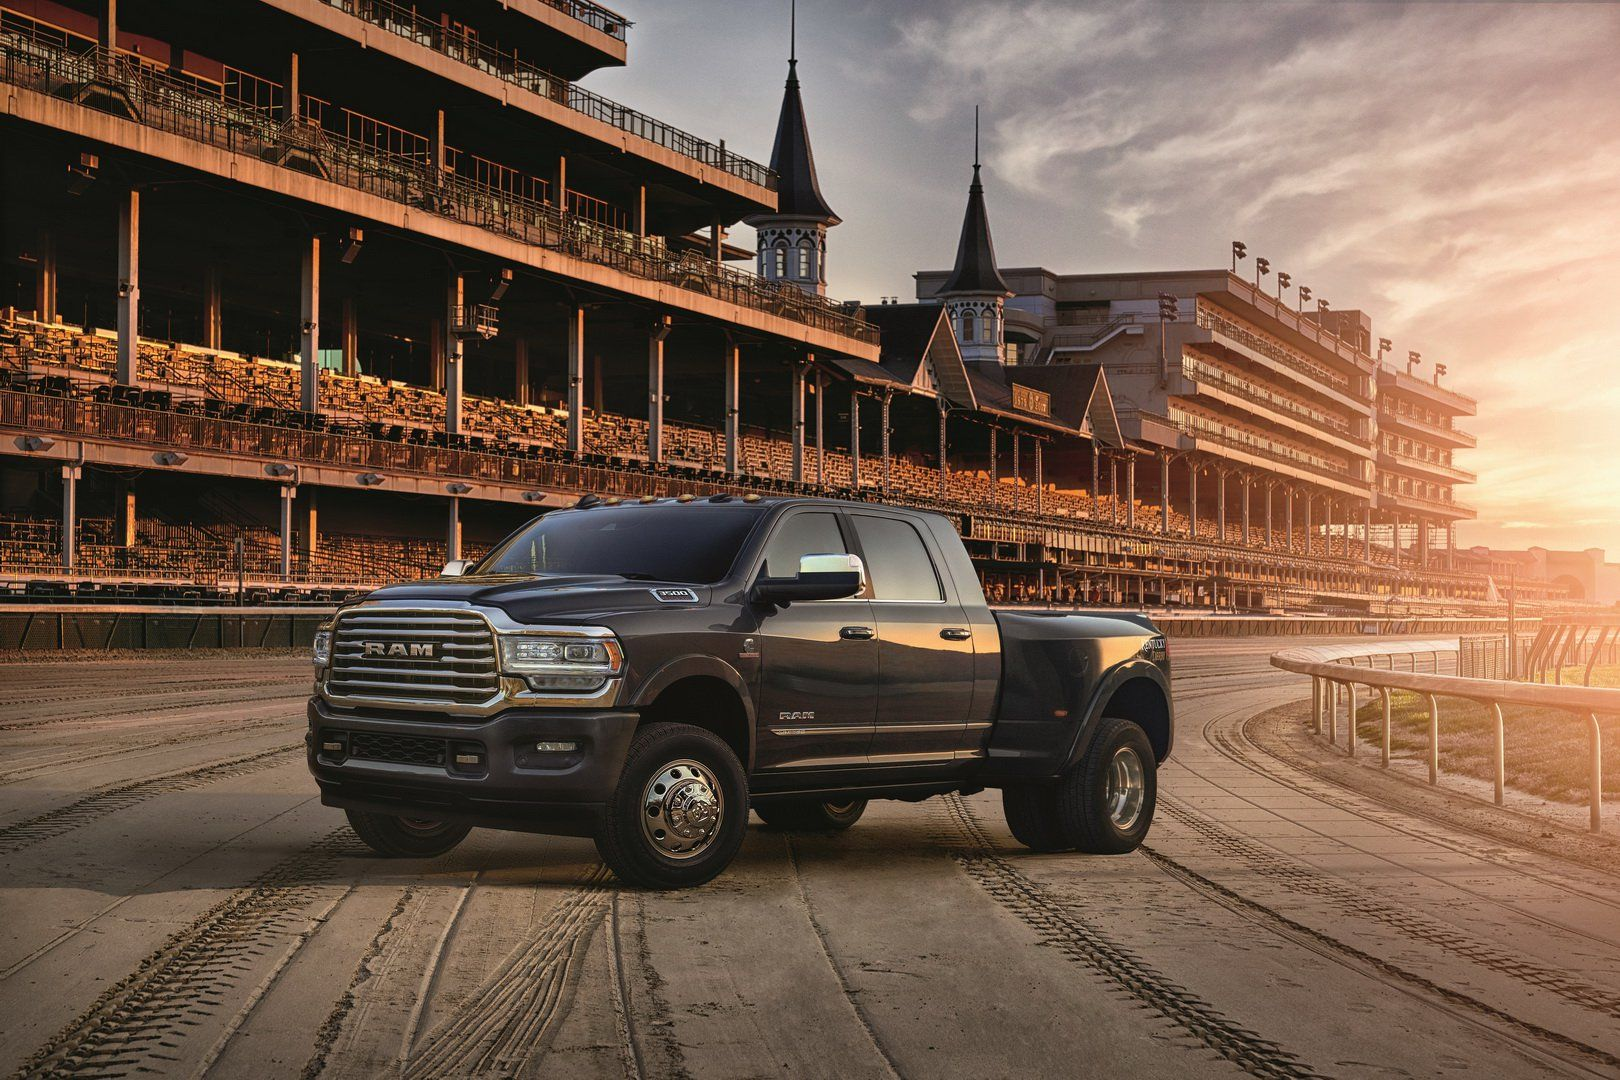 Ram Heavy Duty Trucks Celebrate Kentucky Derby With